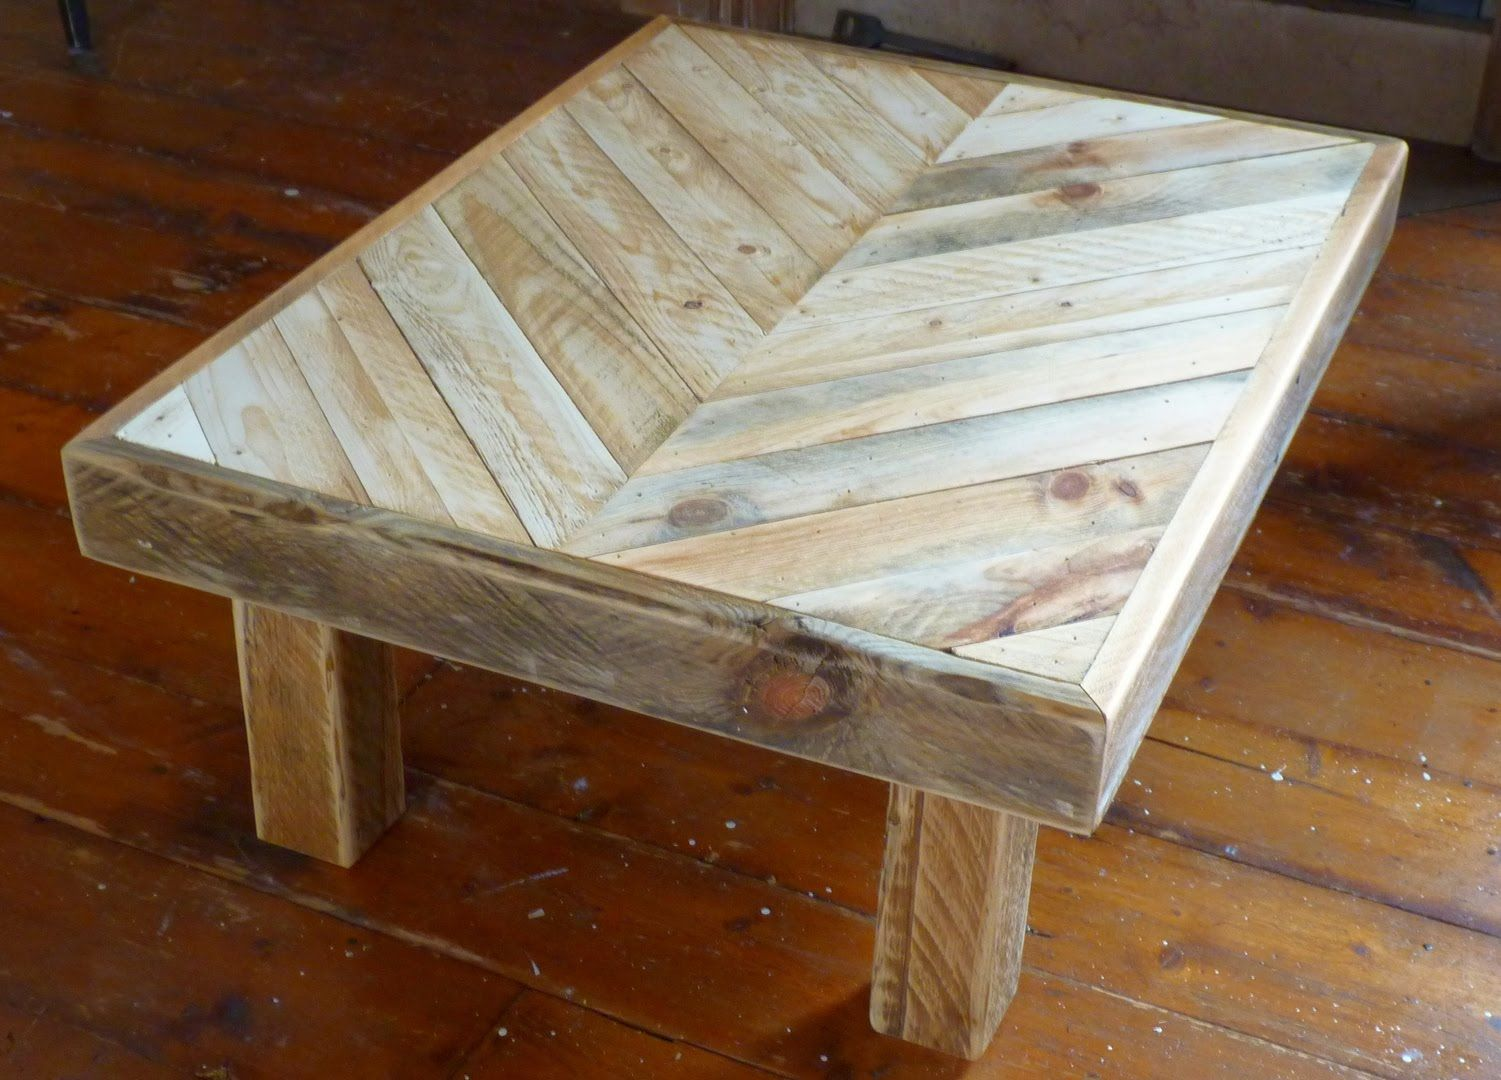 In This Video I Show The Process I Go Through To Build A Coffee Table Out Of Recycled Pallet Coffee Table Out Of Pallets Wood Pallets Wooden Crate Coffee Table